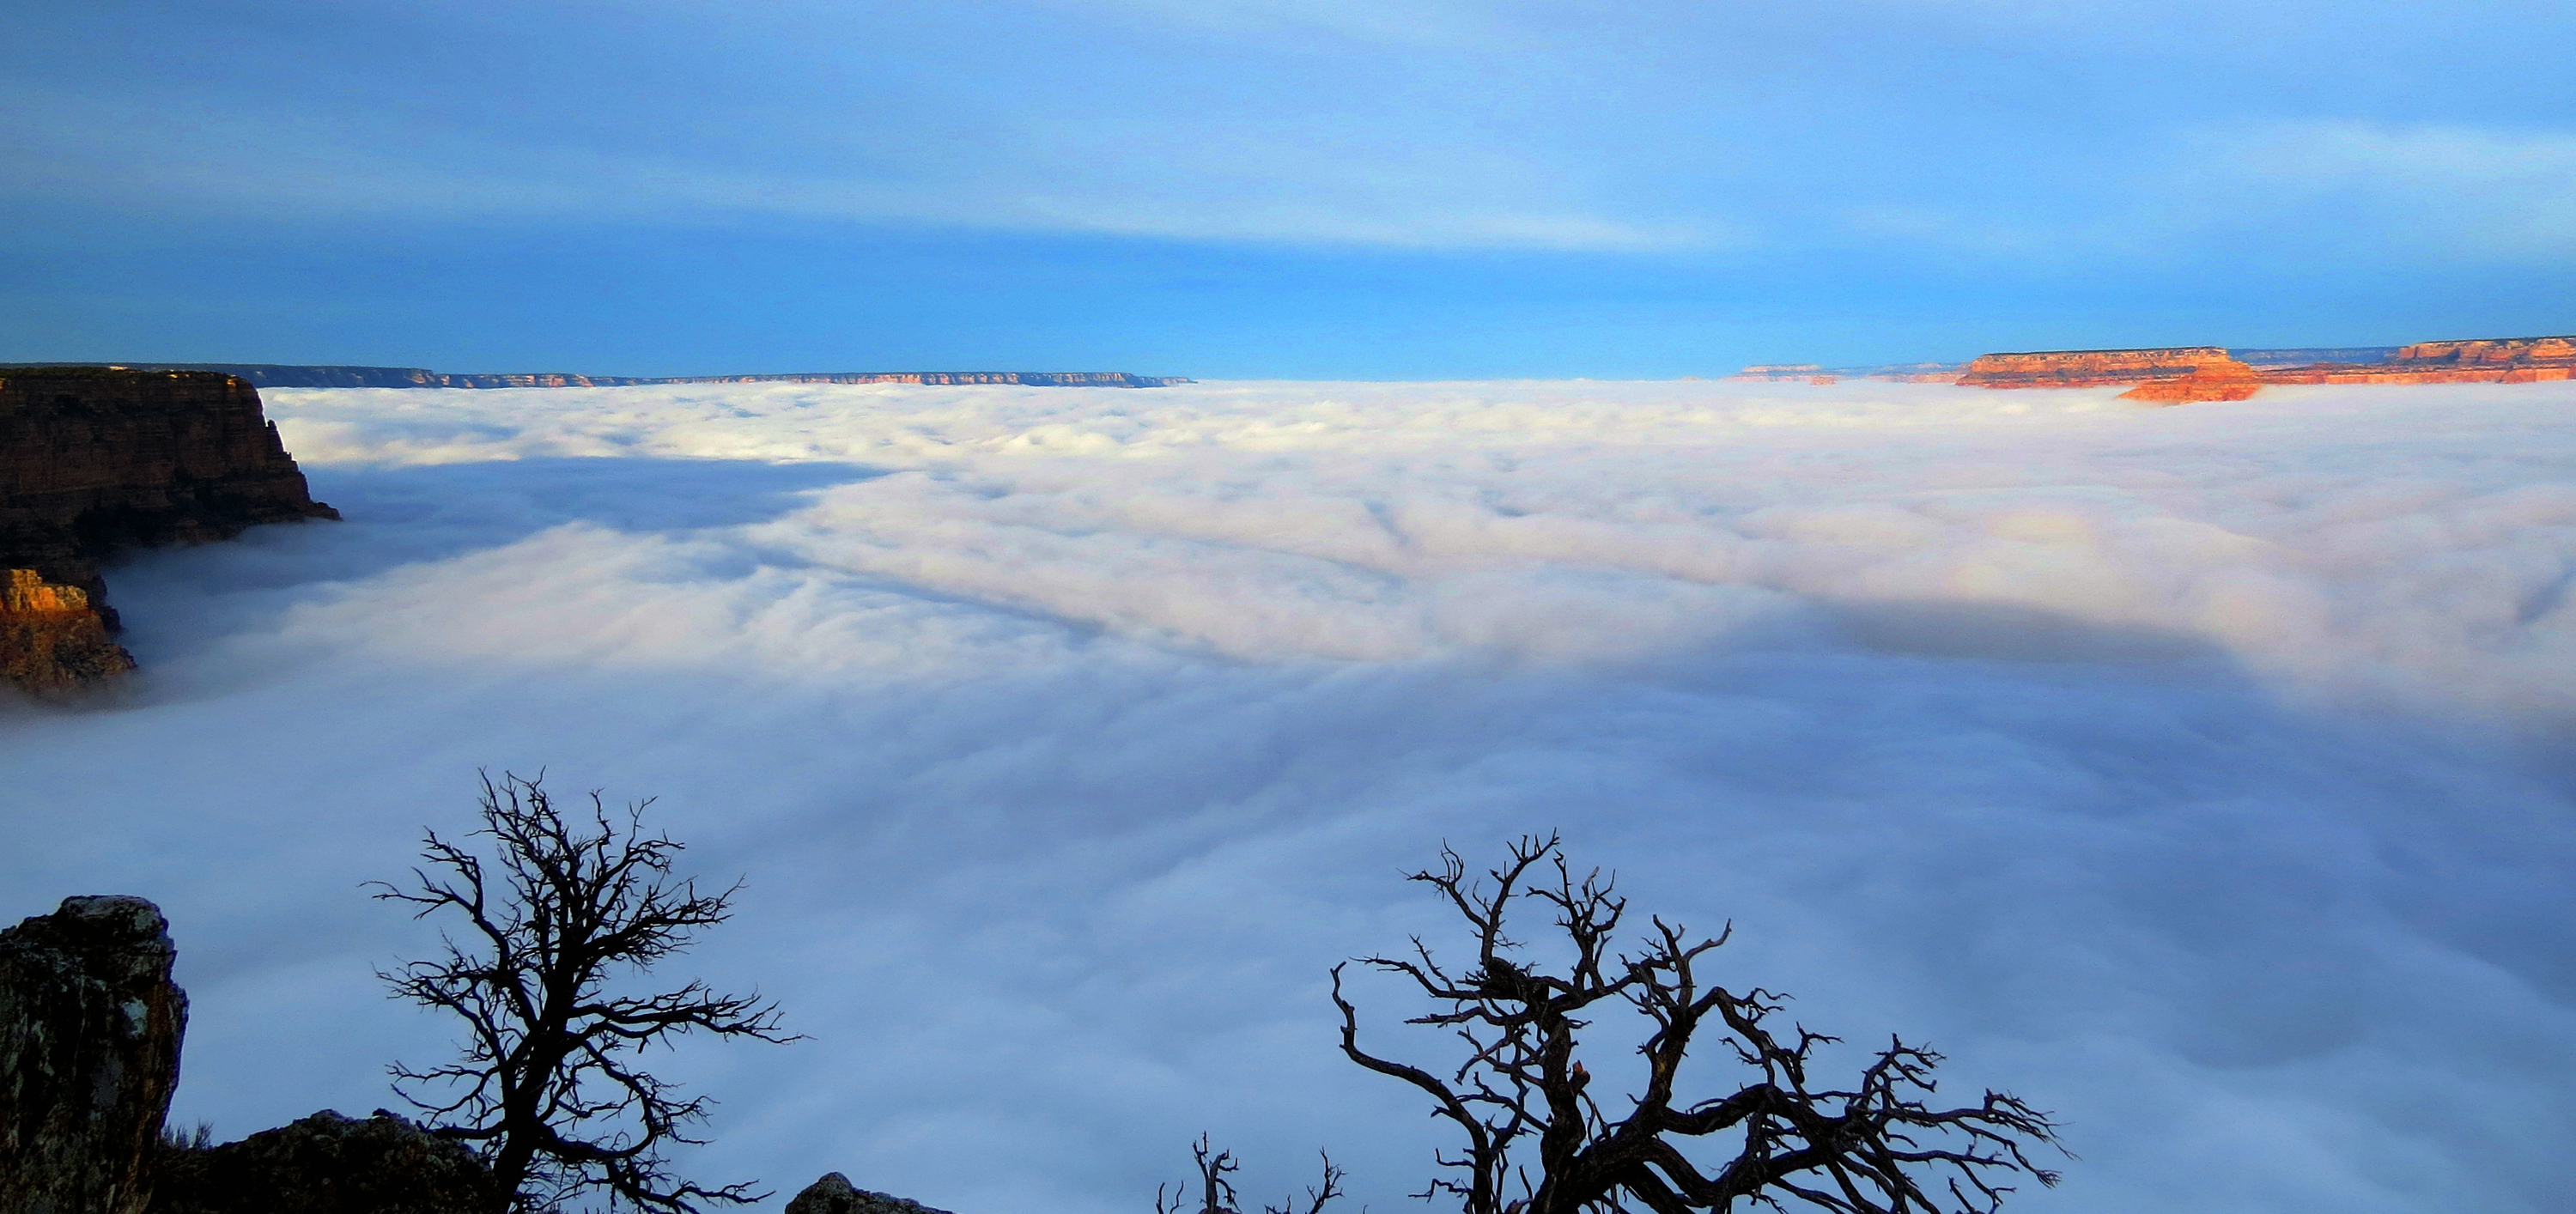 This photo provided by the National Park Service shows dense clouds at the south rim of the Grand Canyon on Dec. 11, 2014 in Arizona.